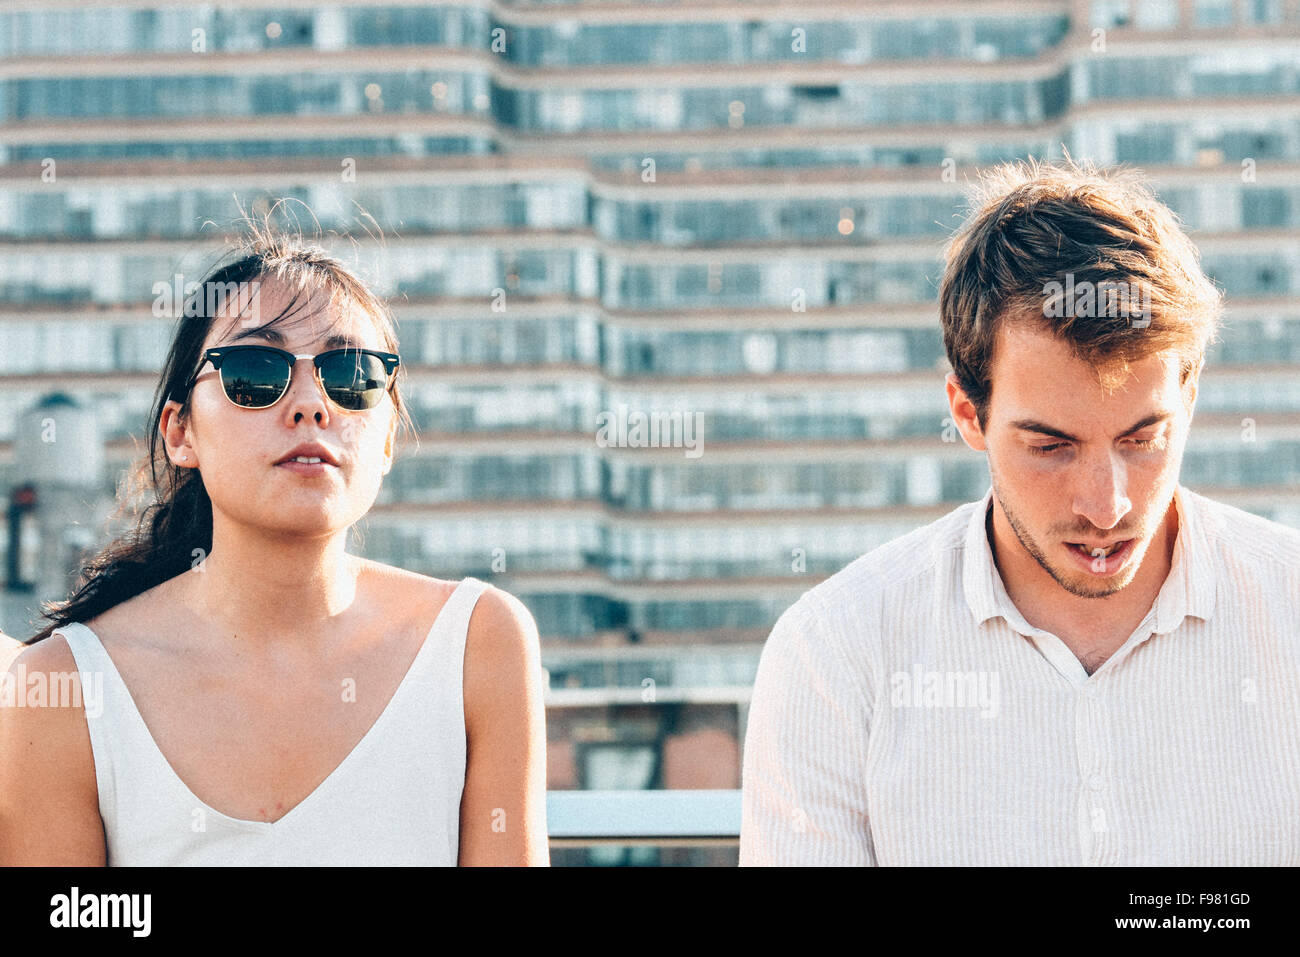 Man And Woman In City - Stock Image